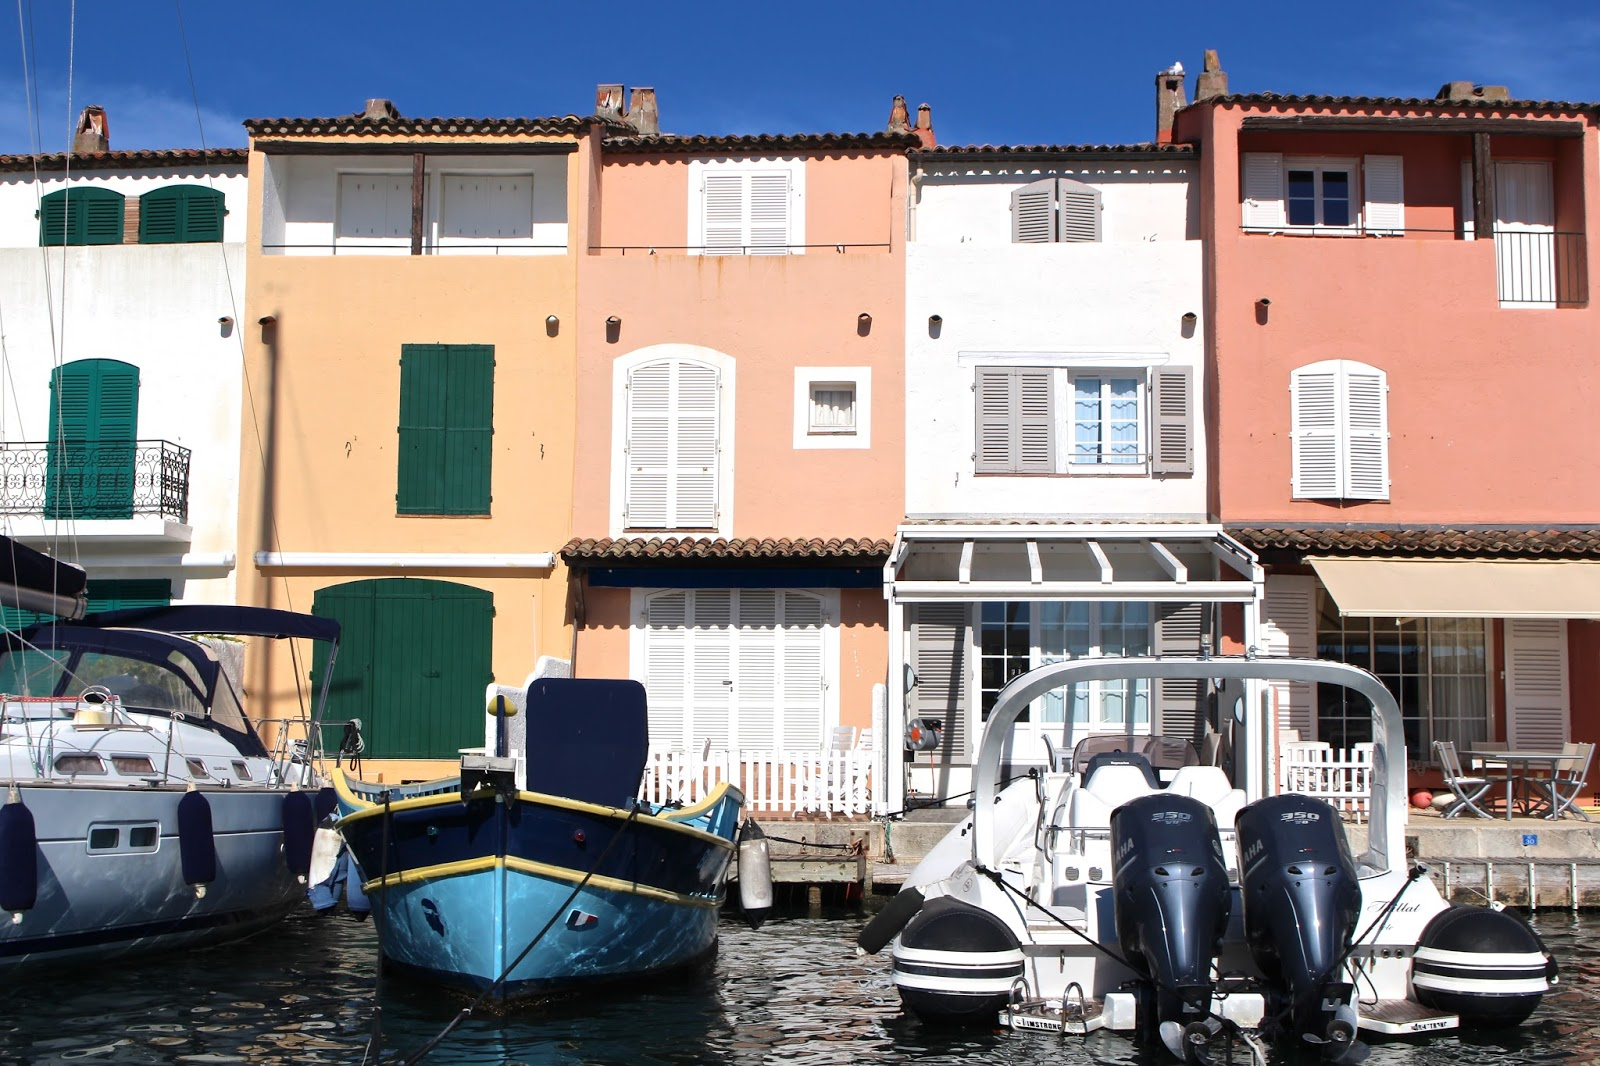 Port Grimaud boats and fisherman style houses